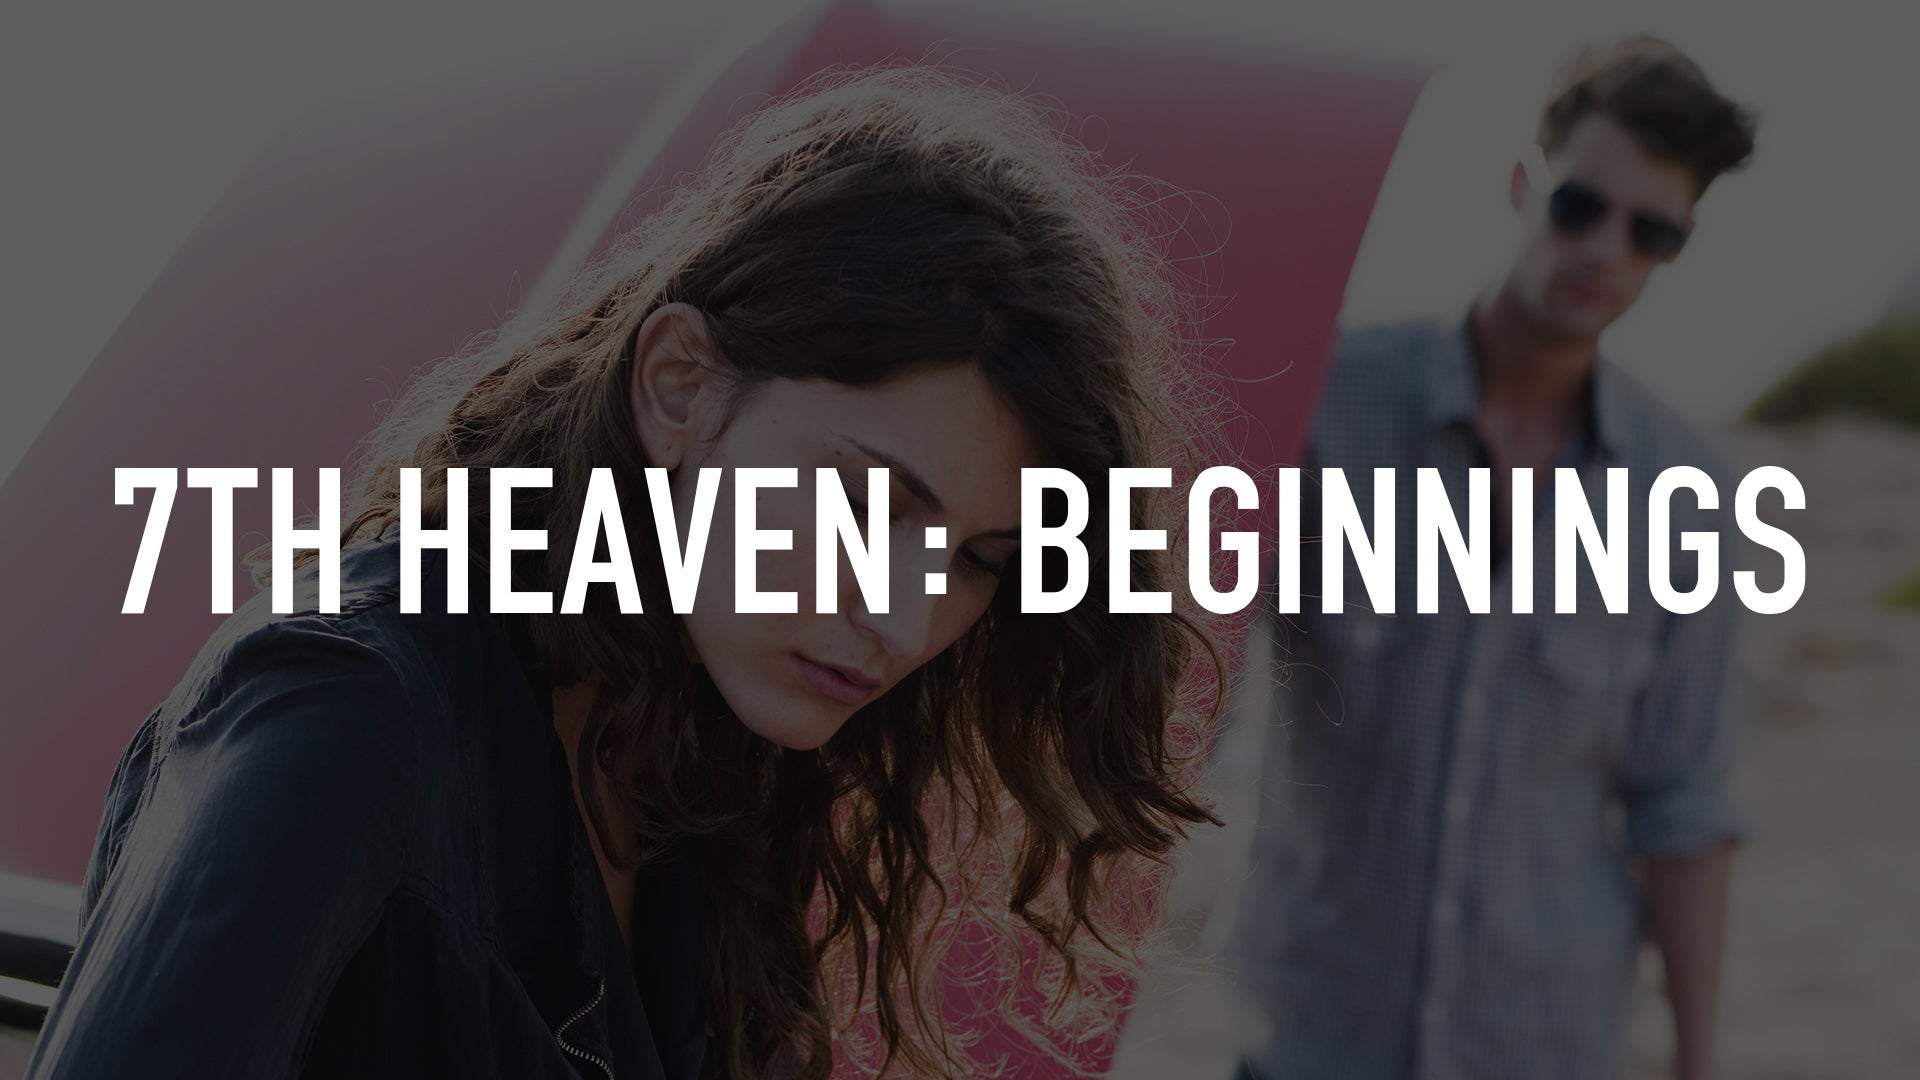 7th Heaven: Beginnings